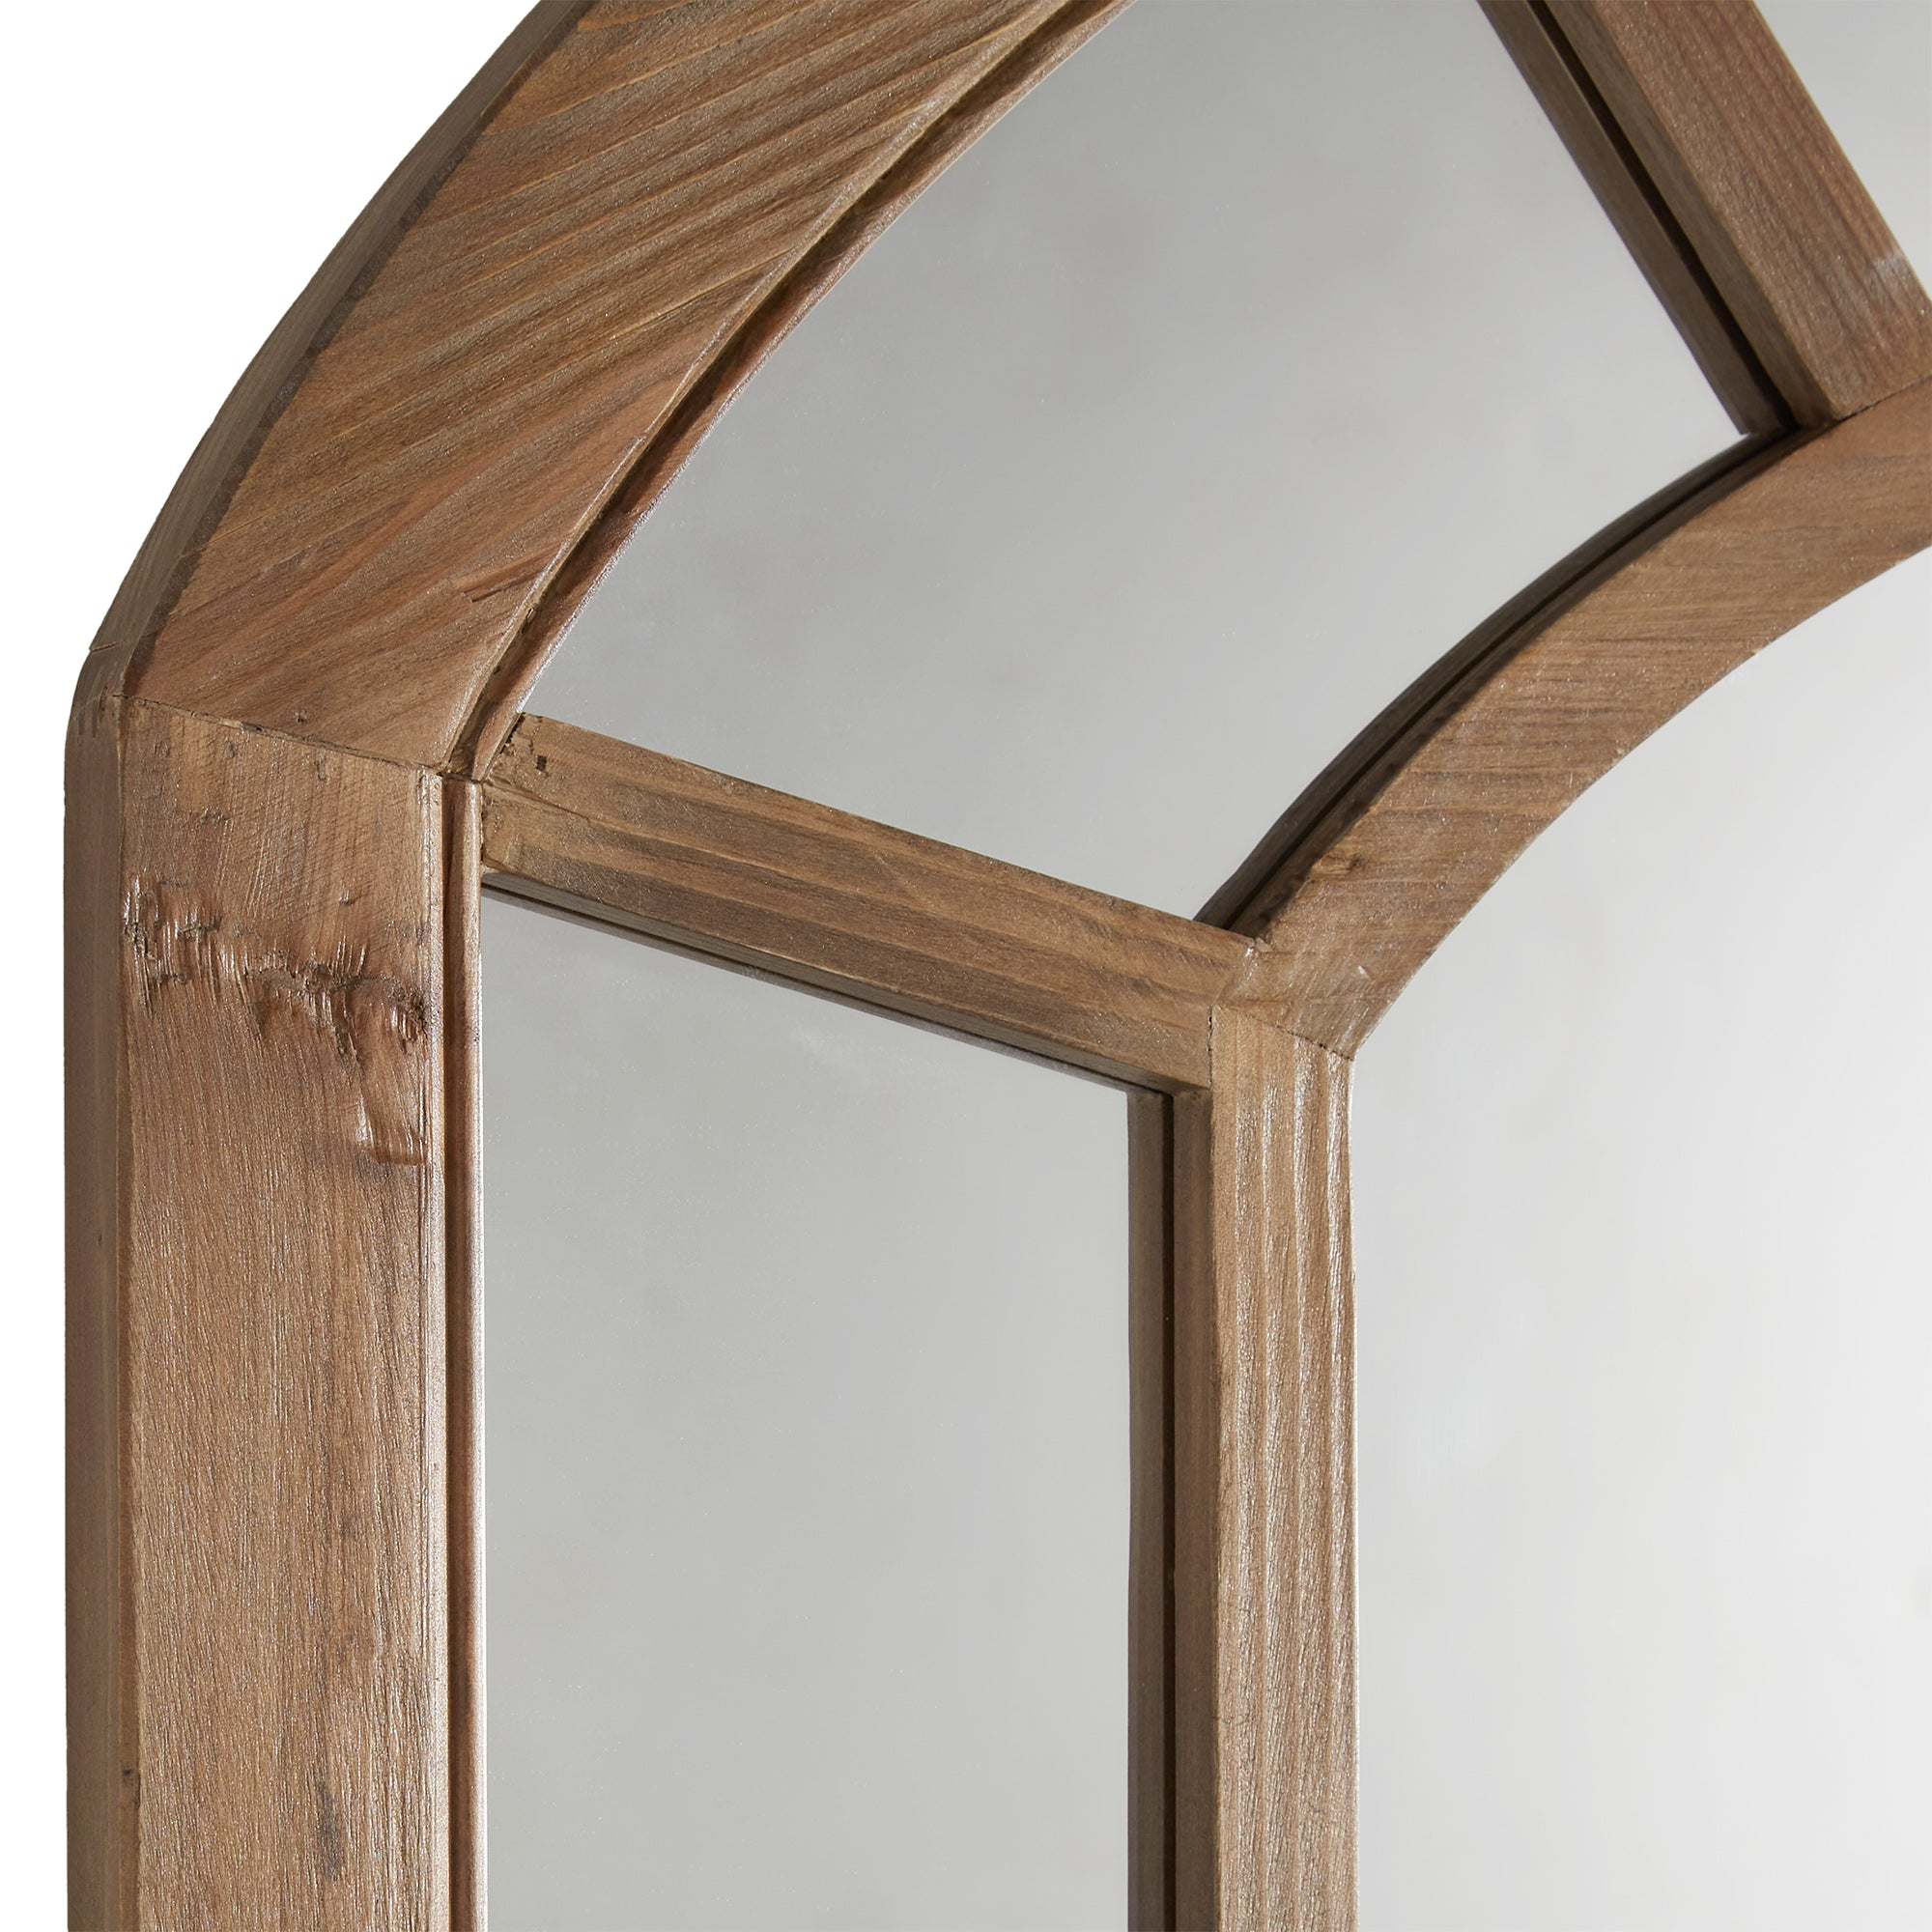 Reclaimed Wood Arched Windowpane Wall Mirror